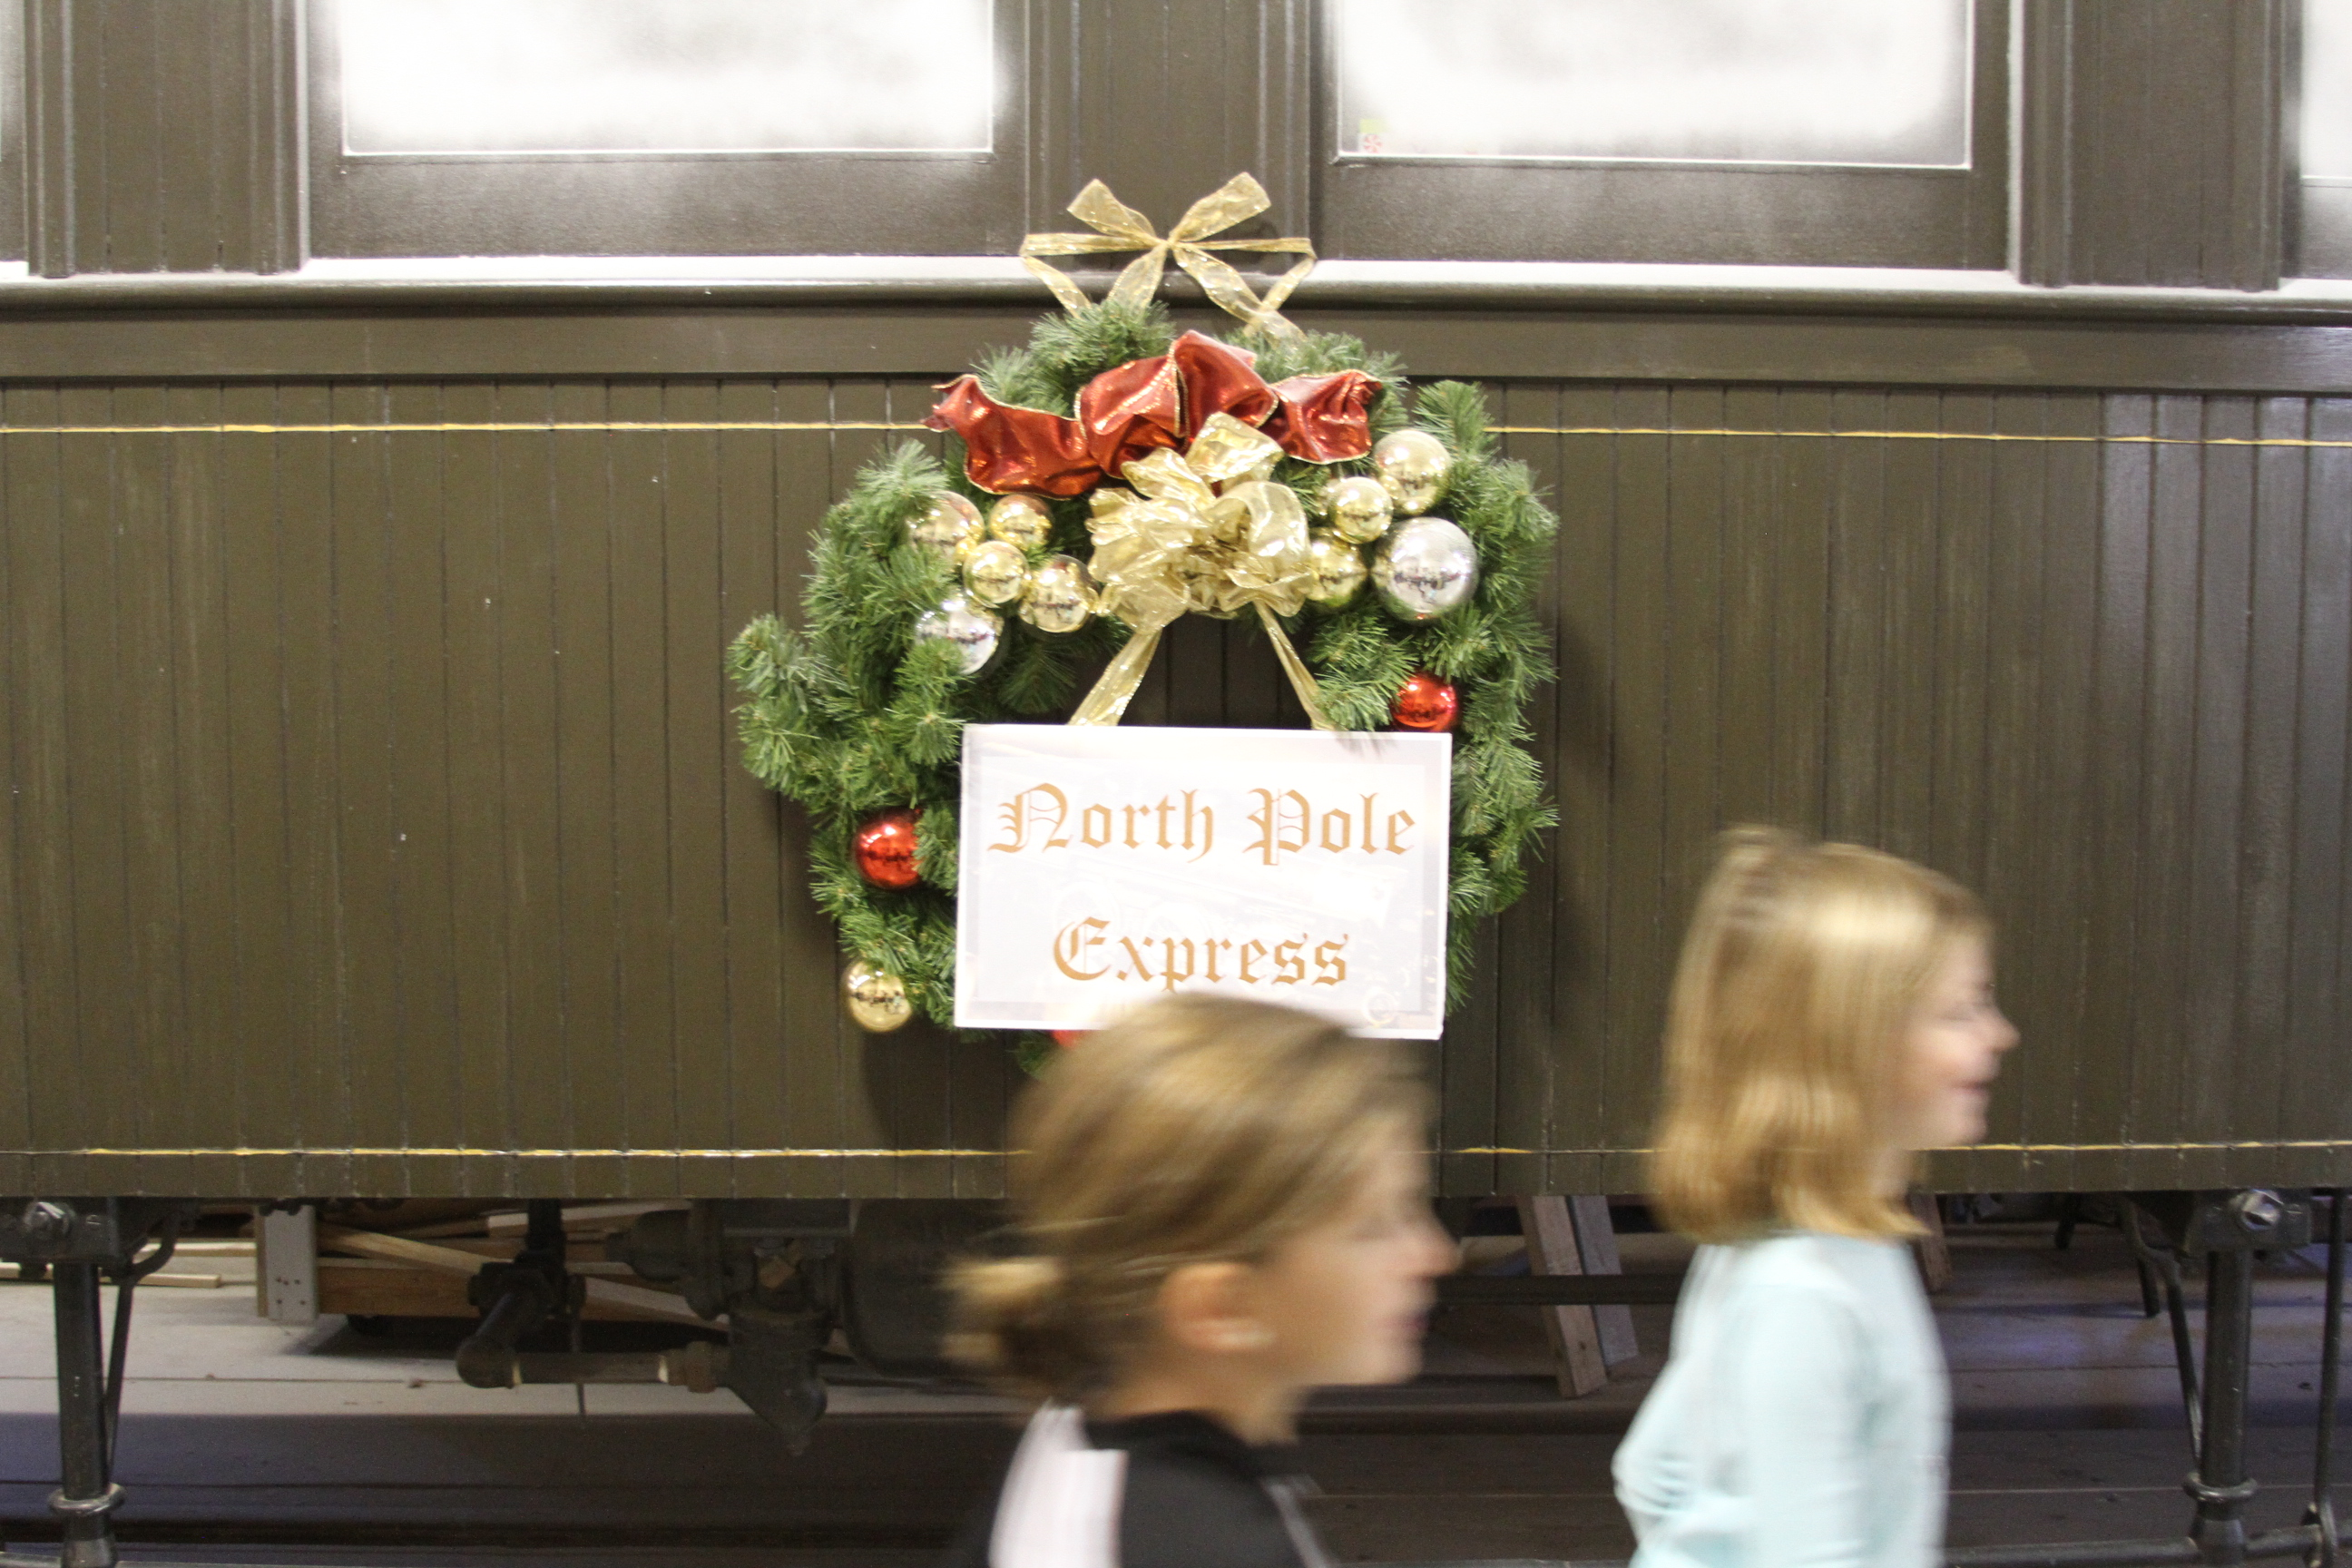 North Pole Express Registration Opens